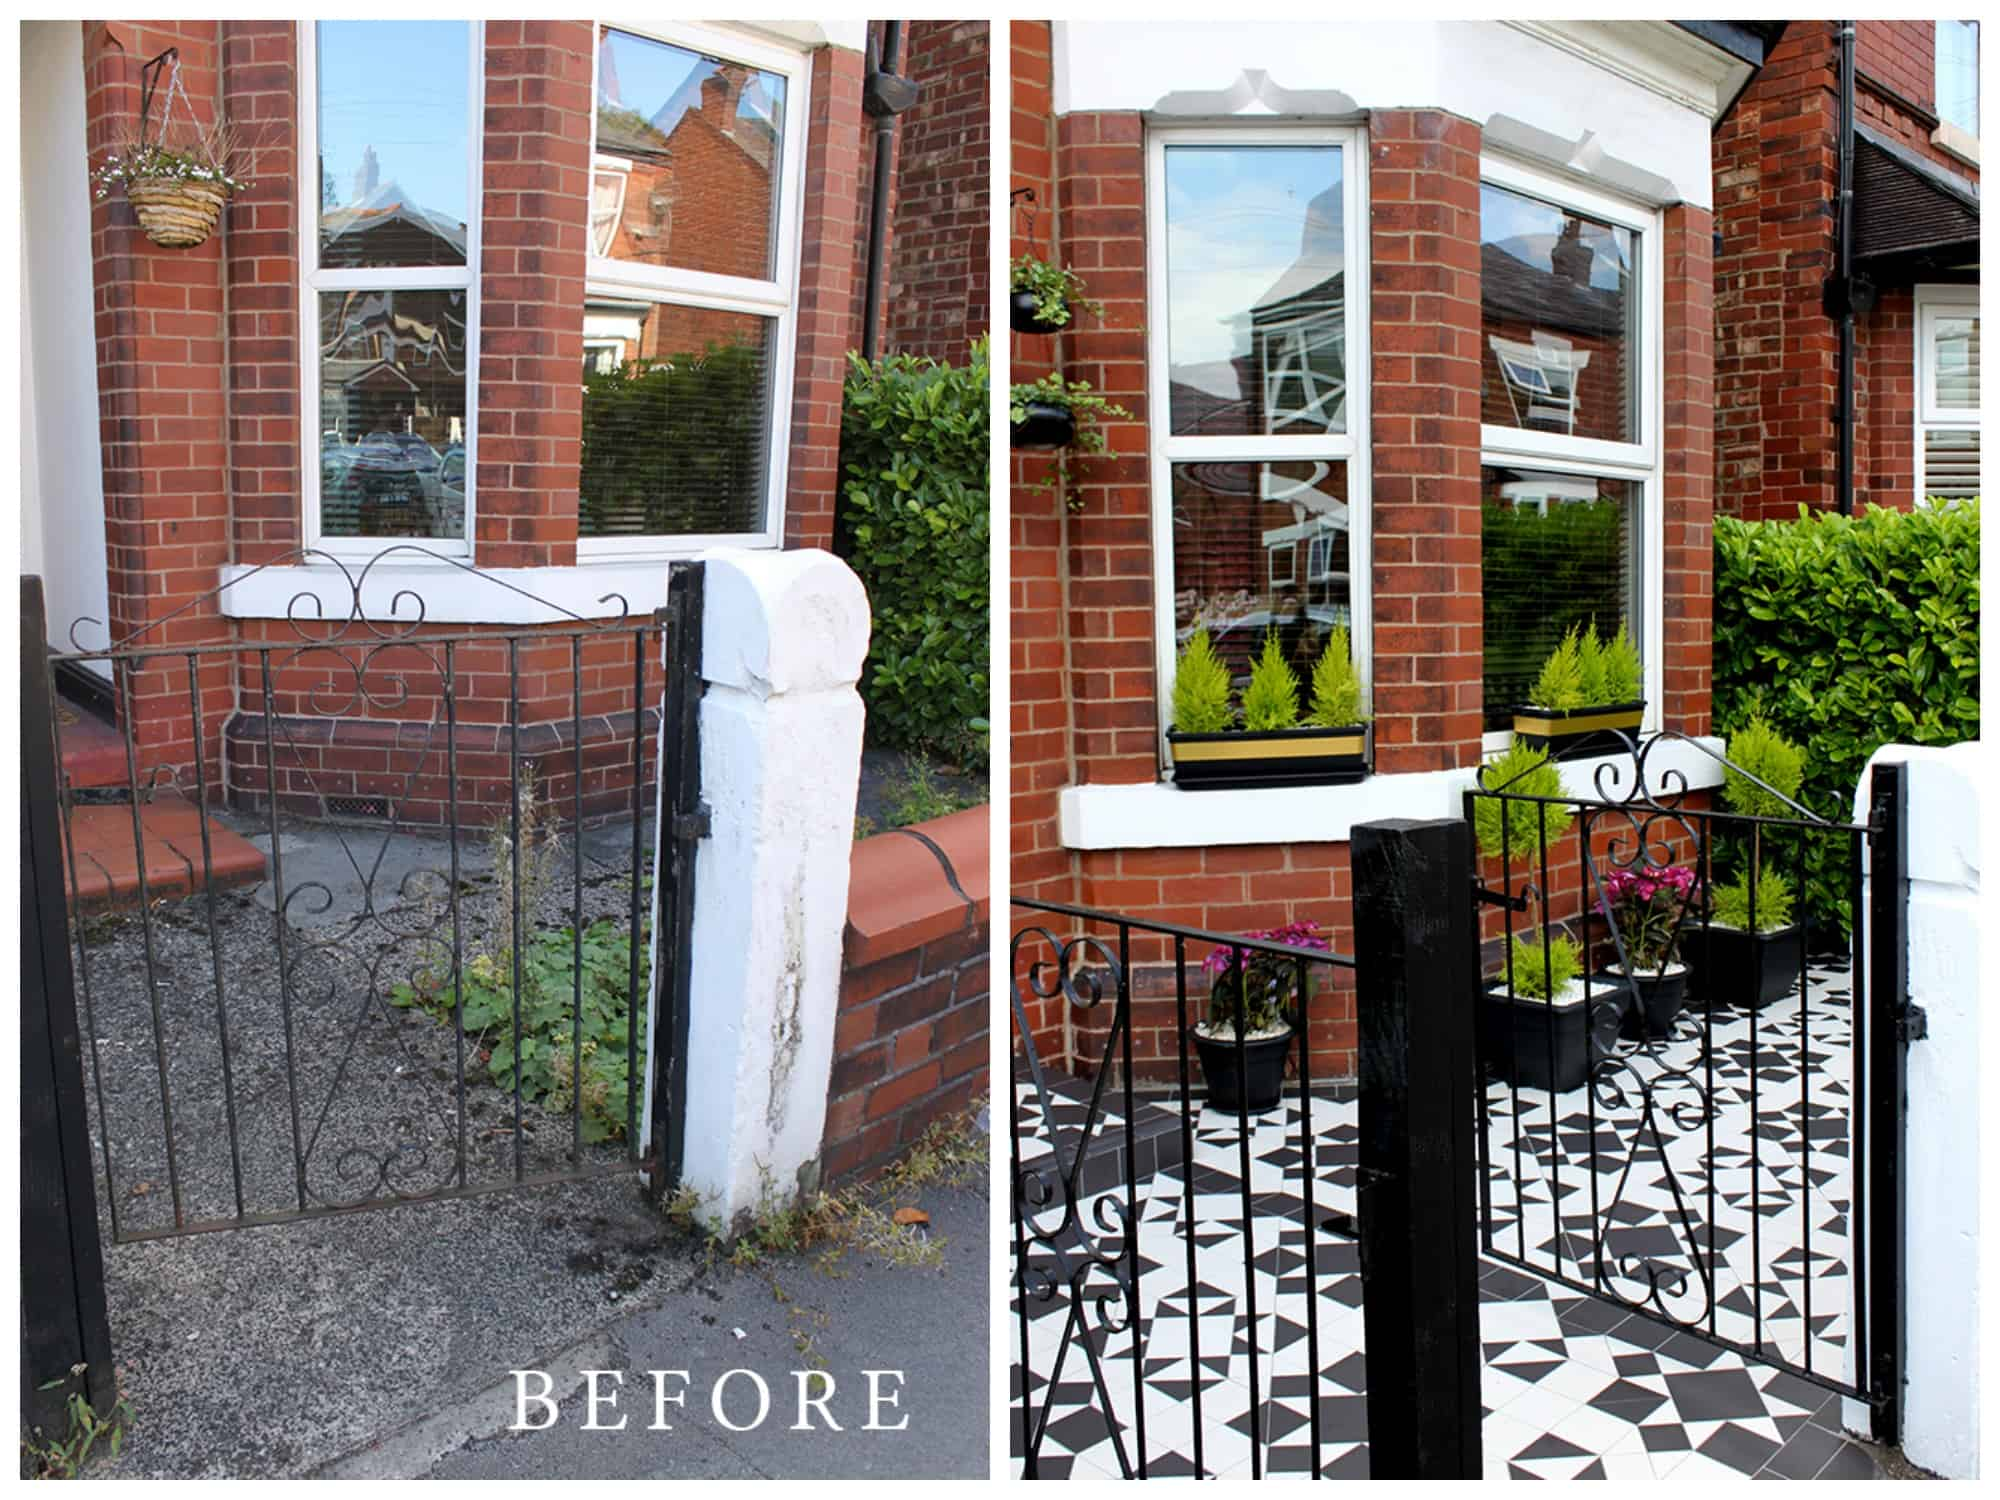 Swoonworthy blog front patio makeover. 10 tips for preparing your home for sale - give it curb appeal